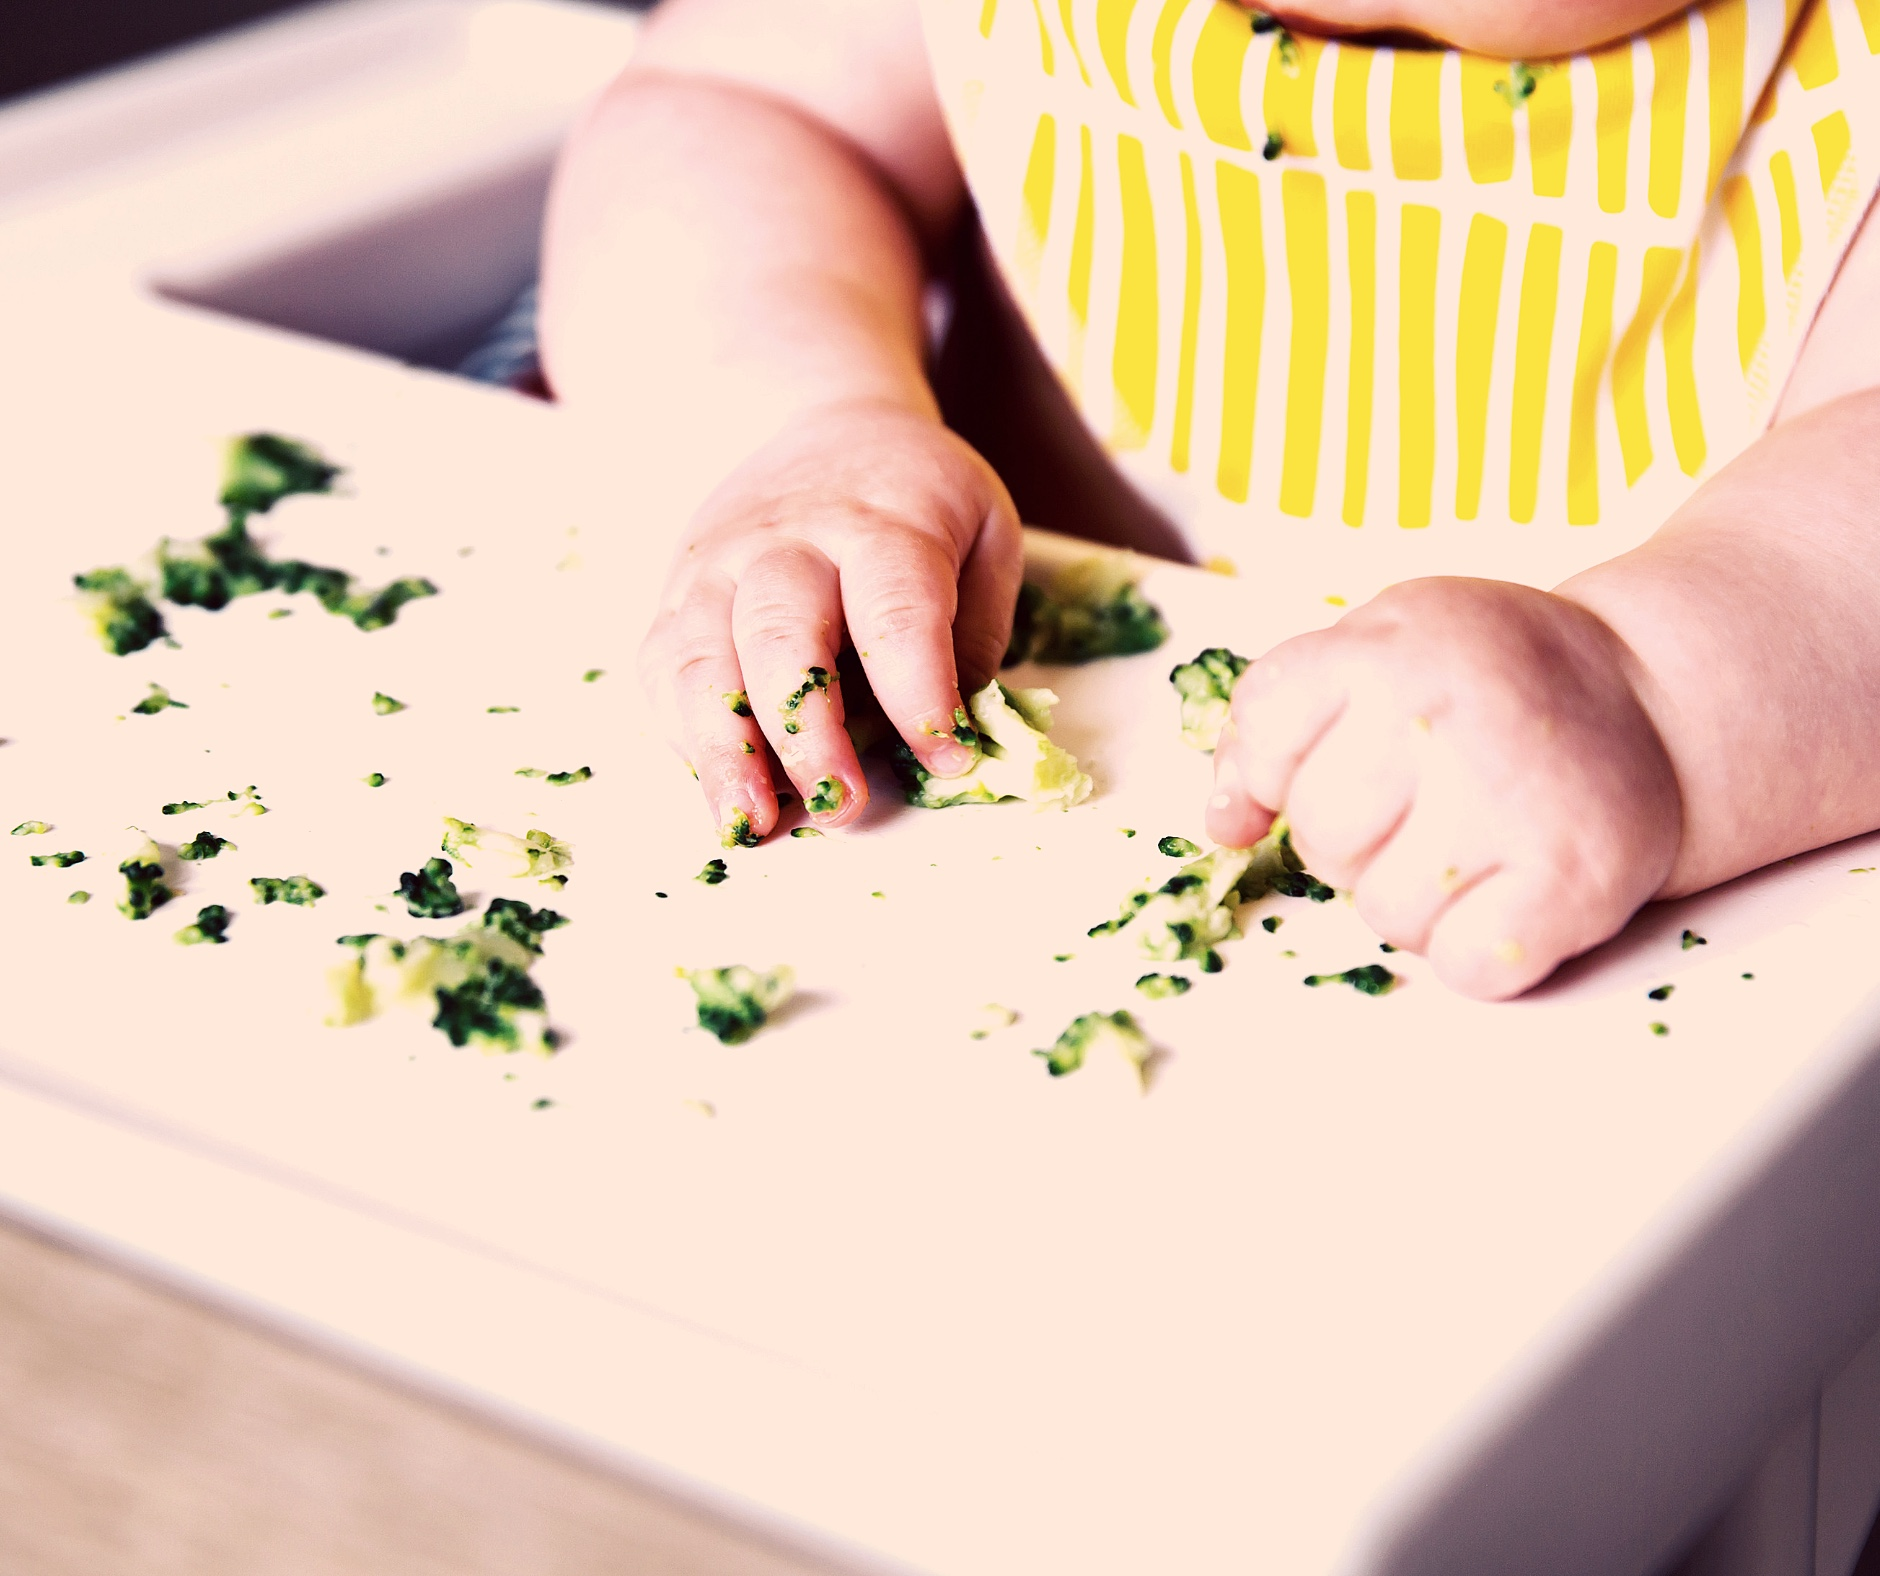 White chubby baby with bright yellow bib playing with cut up veggies on a high chair tray.